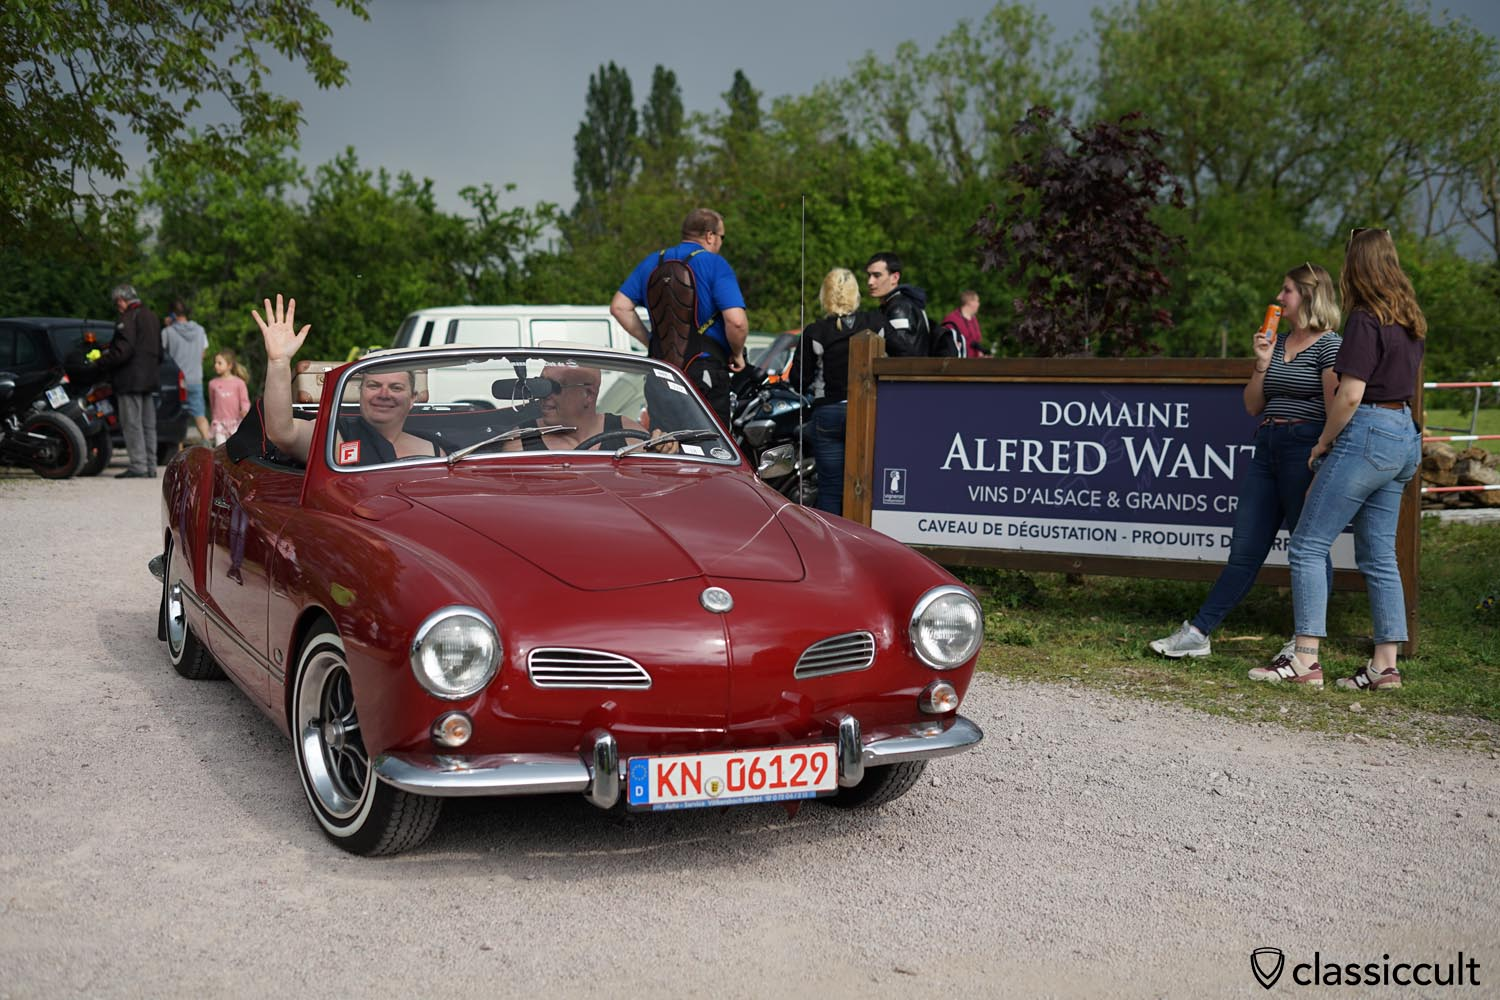 VW Karmann Ghia convertible